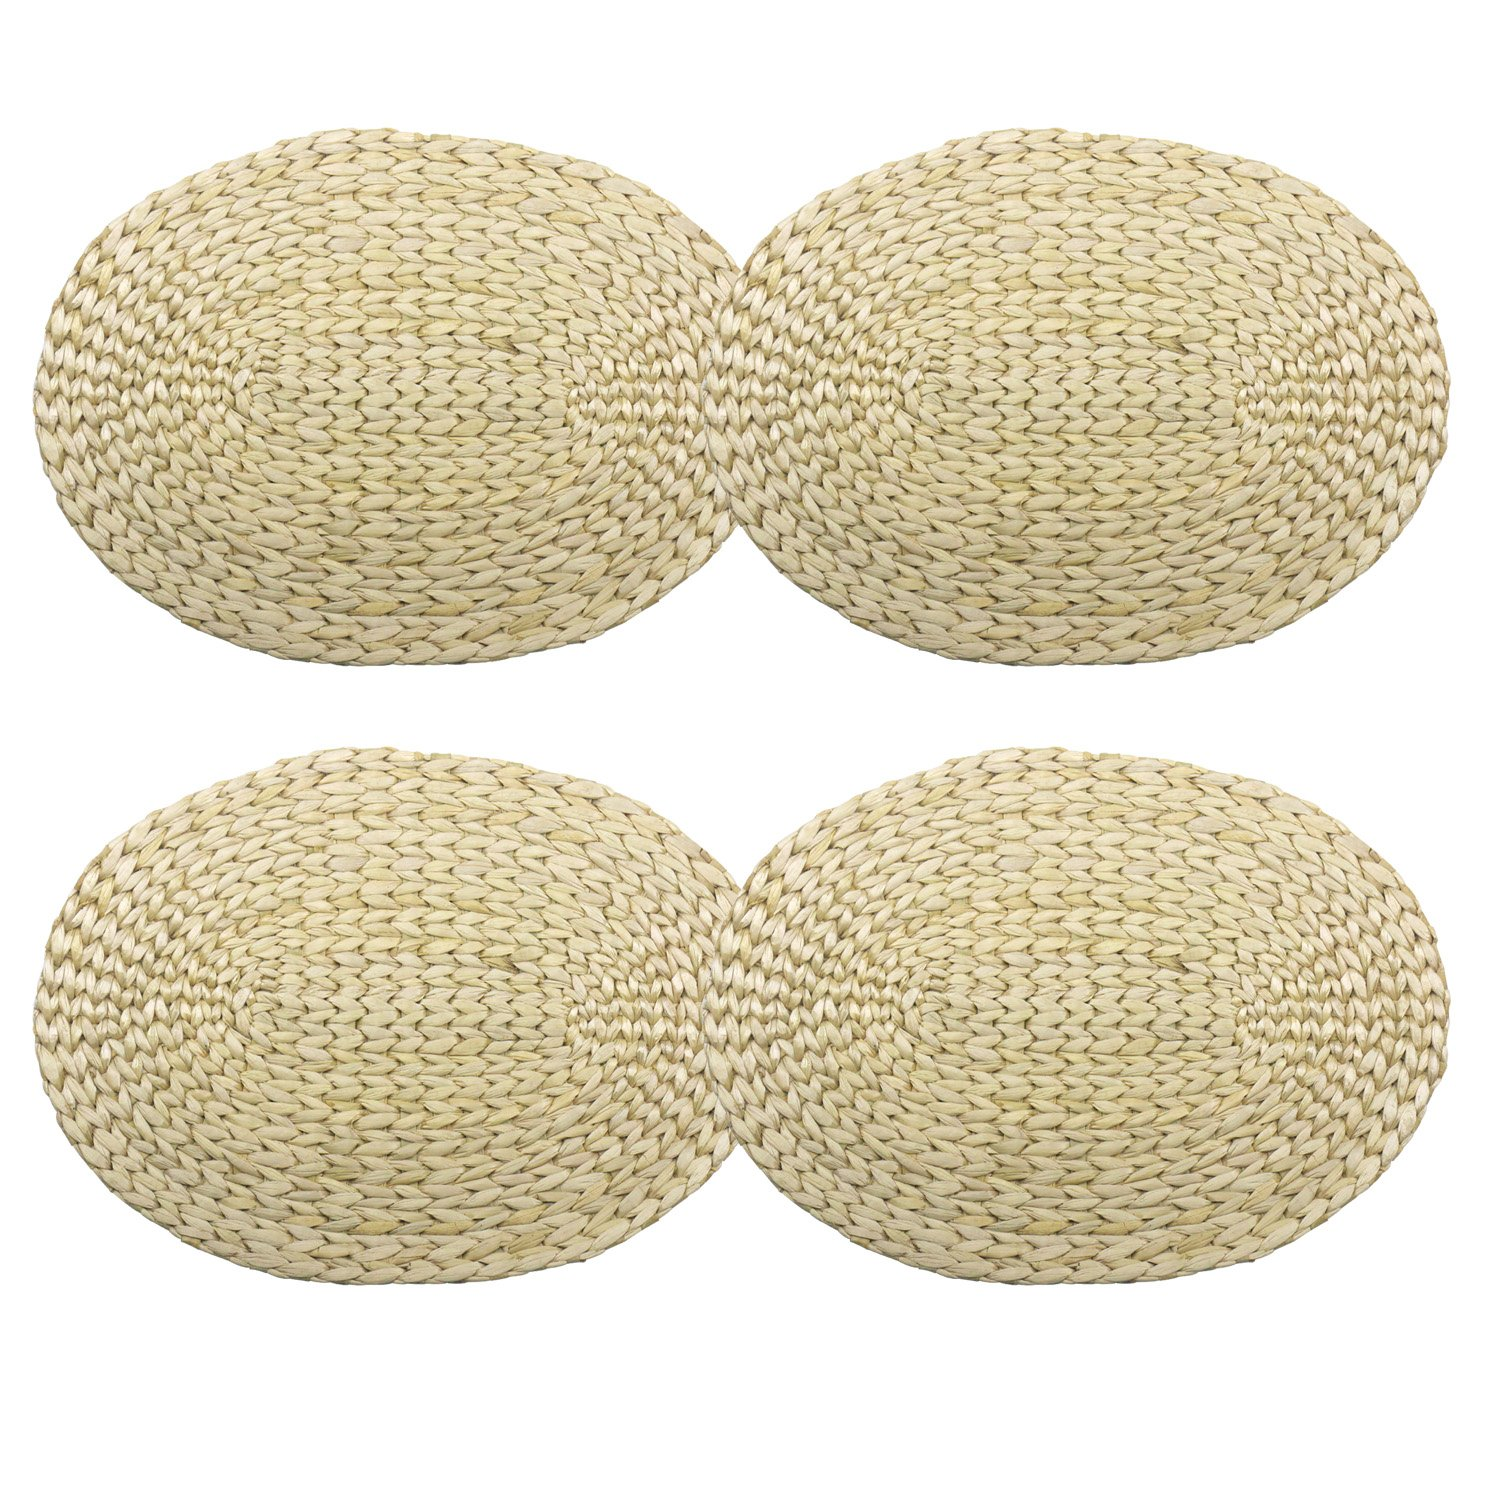 Handmade Oval Braided Natural Straw Placemats Set of 4 - ChristmasTablescapeDecor.com